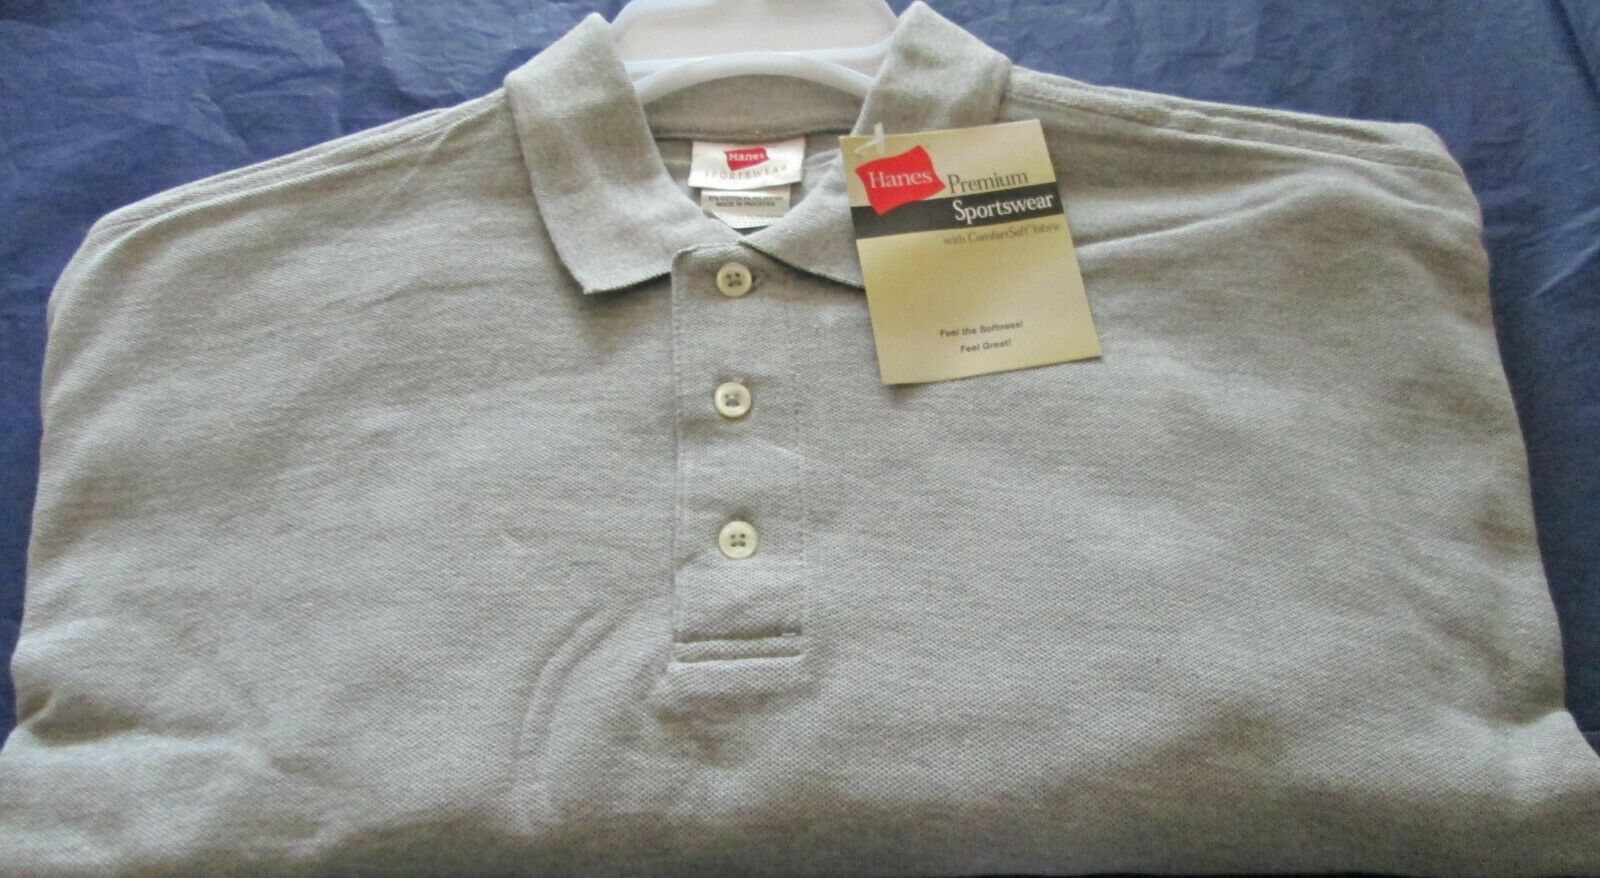 Primary image for Men's Golf Shirt Hanes Long Sleeve 3 PC Beige Color Cotton Comfort Soft Fabric